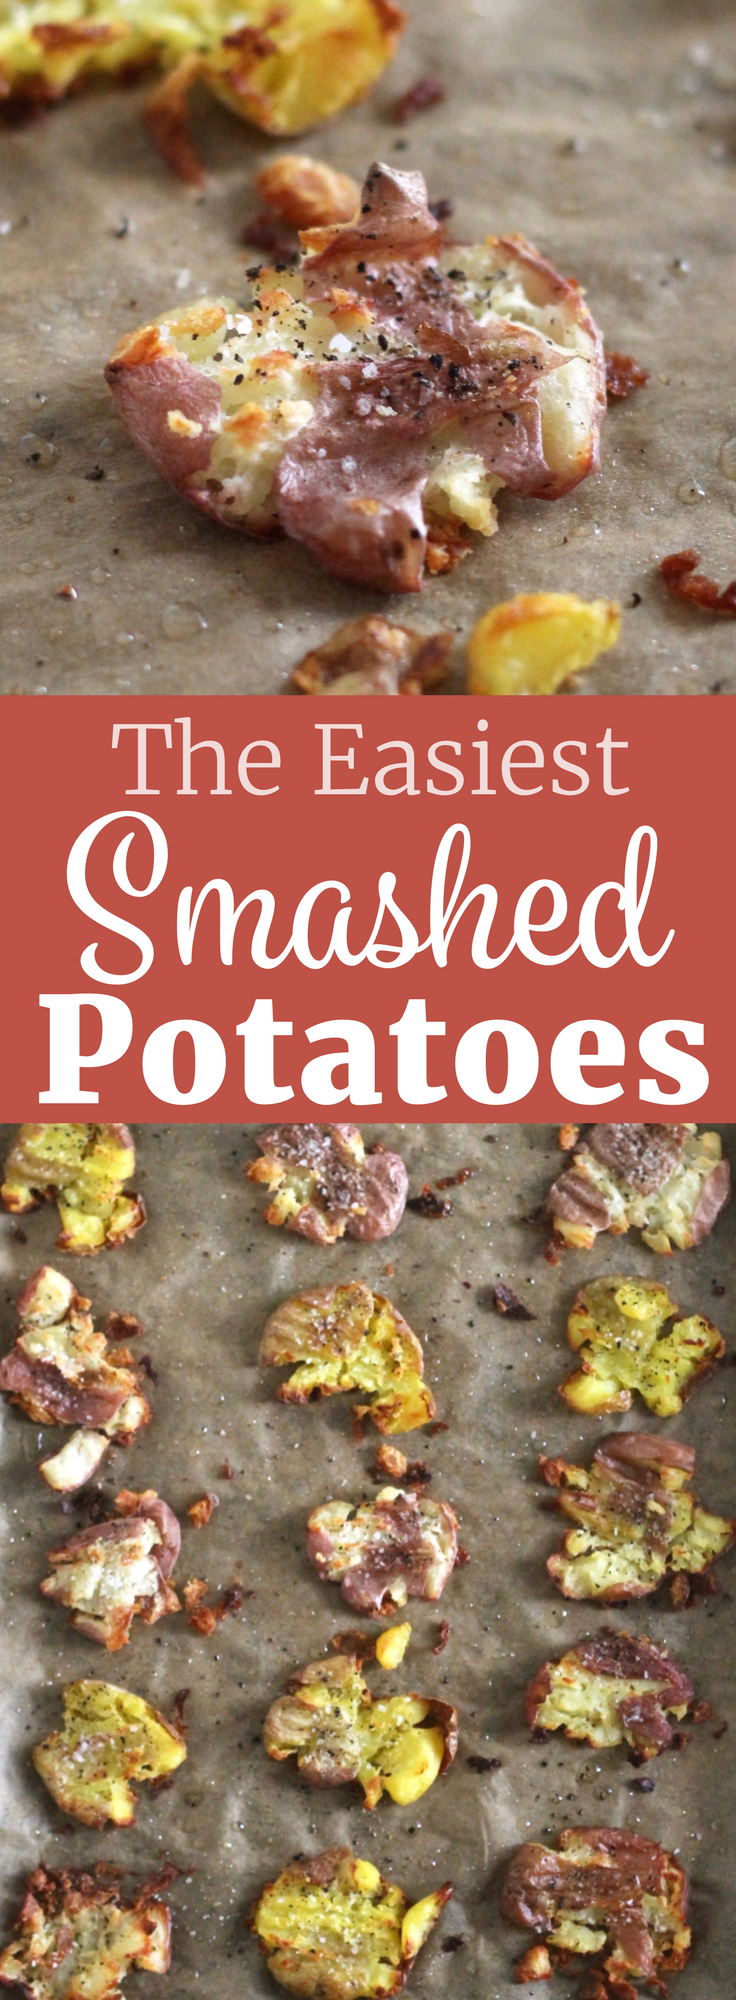 The Easiest Smashed Potatoes Recipe. A delicious vegan & gluten-free side dish! ll www.littlechefbigappetite.com